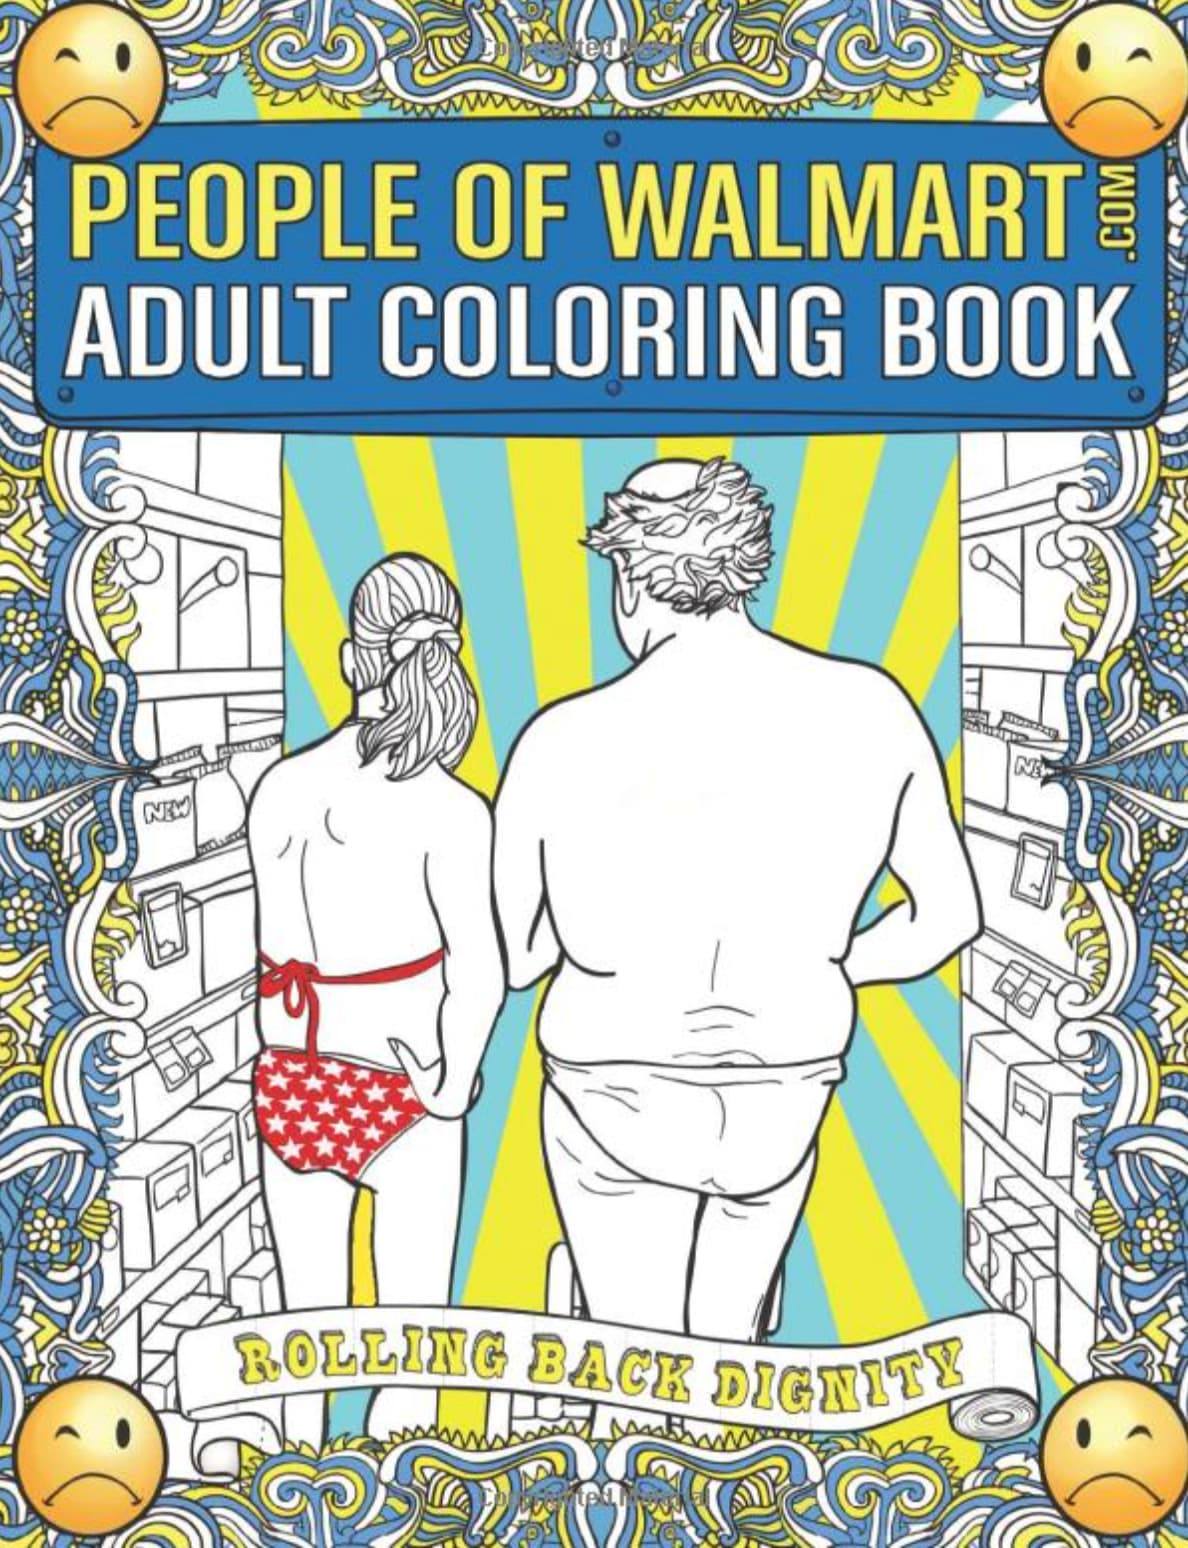 The People of Walmart Coloring Book 2